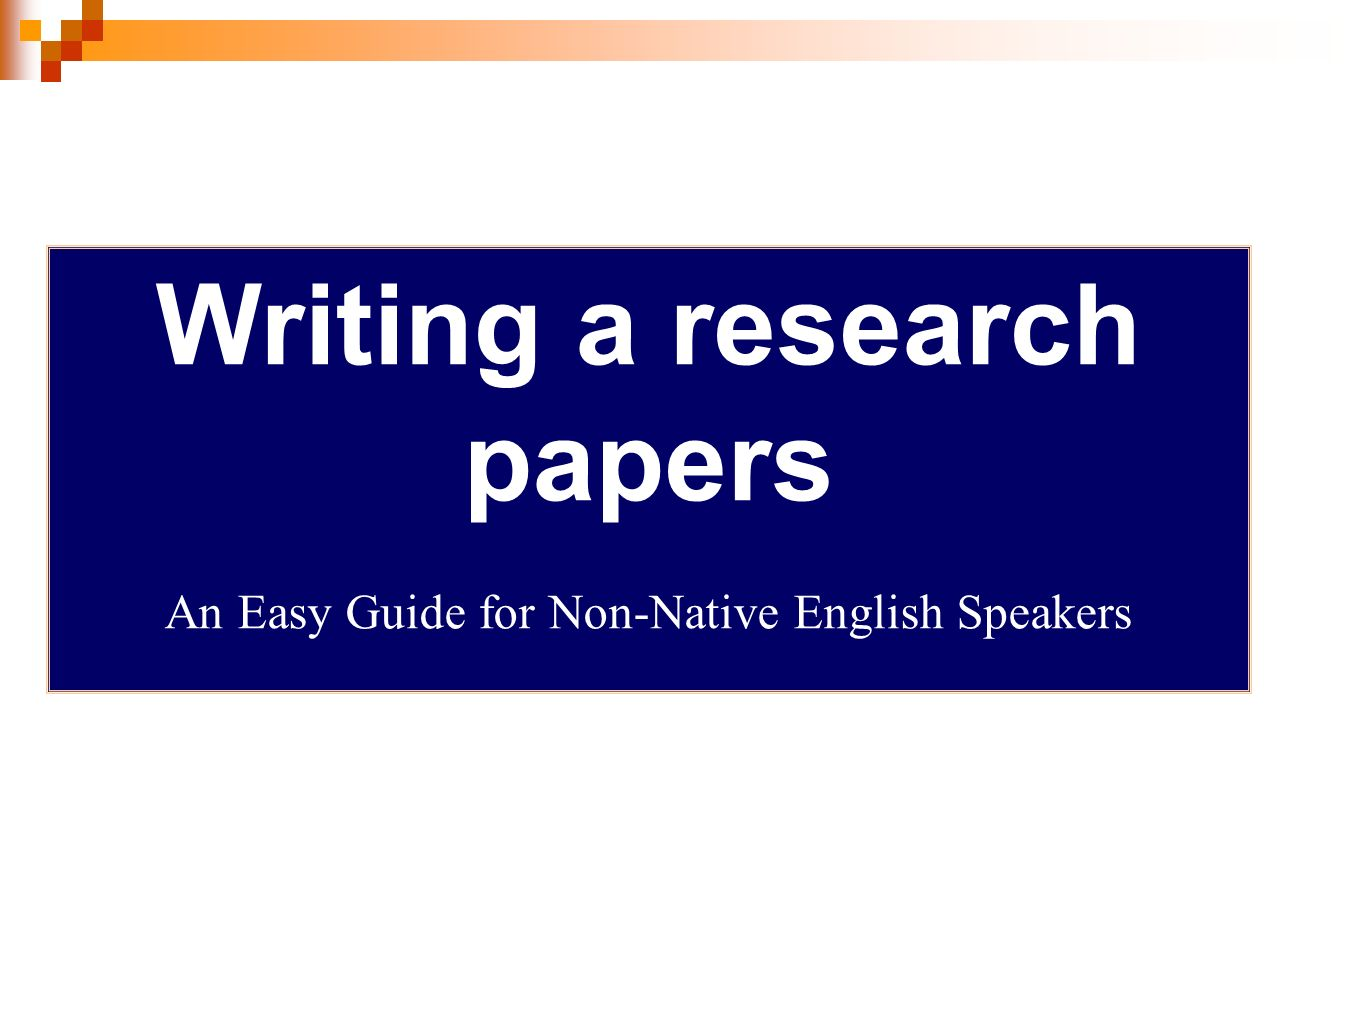 writing research papers an easy guide for non-native-english speakers Writing in english for non–native speakers a practical guide to business writing writing in english for non a practical guide to business writing will help.